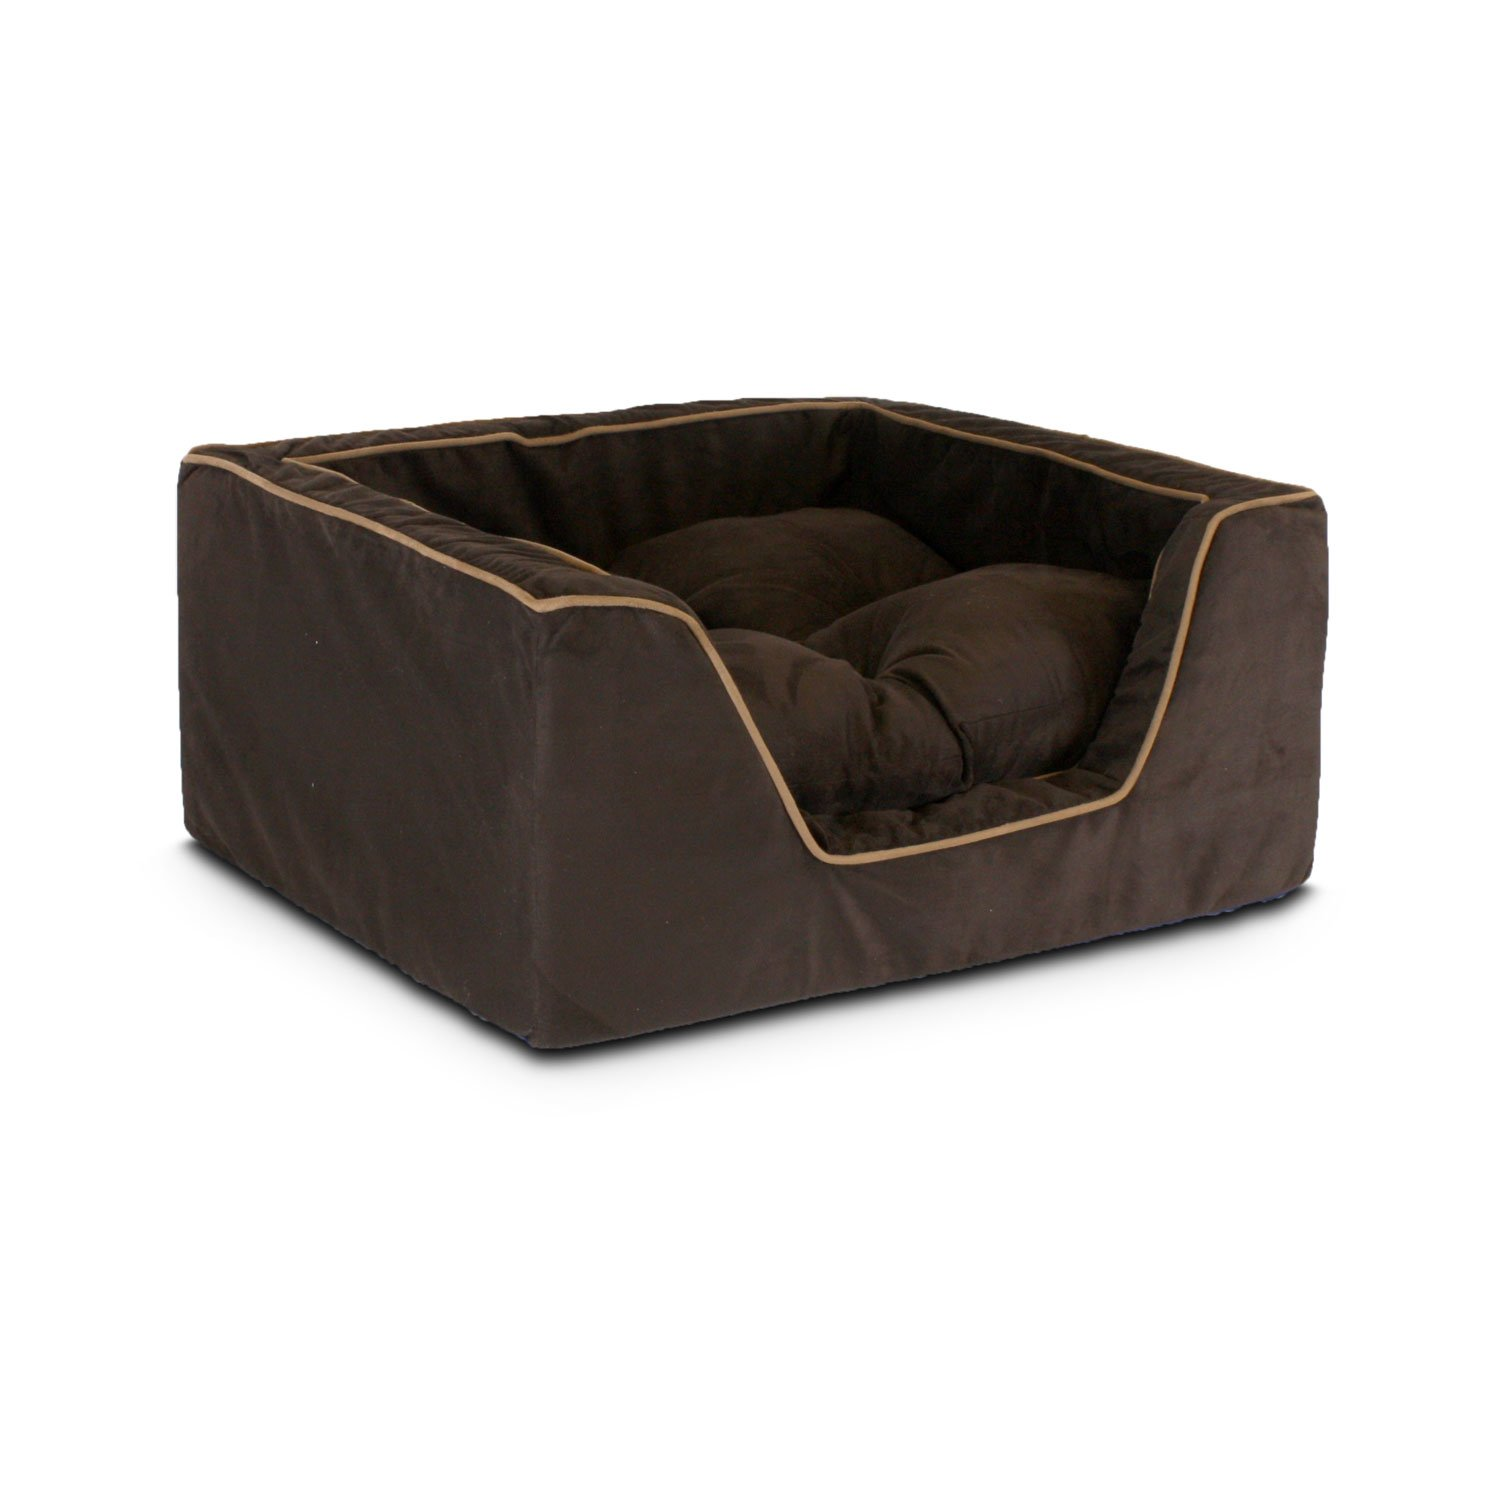 Snoozer Luxury Square Bed in Hot Fudge with Cafe Cording